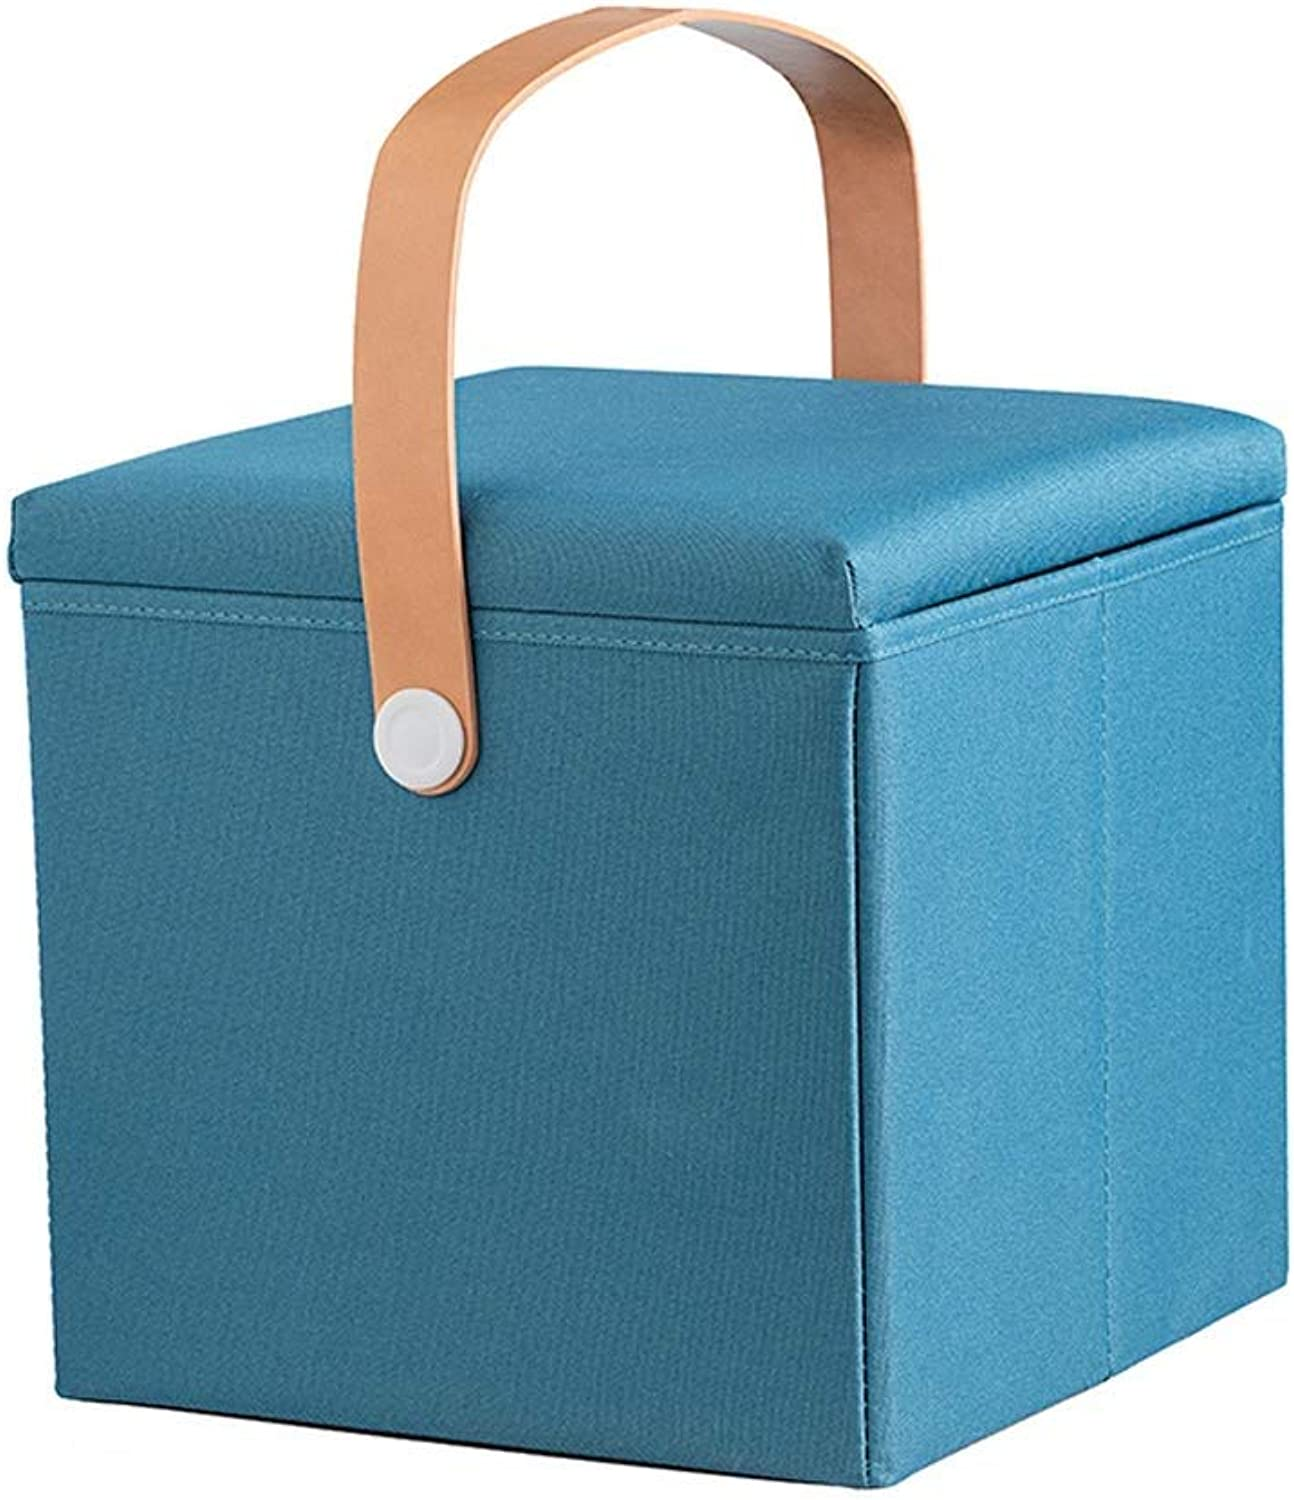 ZDYUY Footstool Sofa Stool Portable Foldable Storage Change shoes Polyester, 4 colors (color   D)